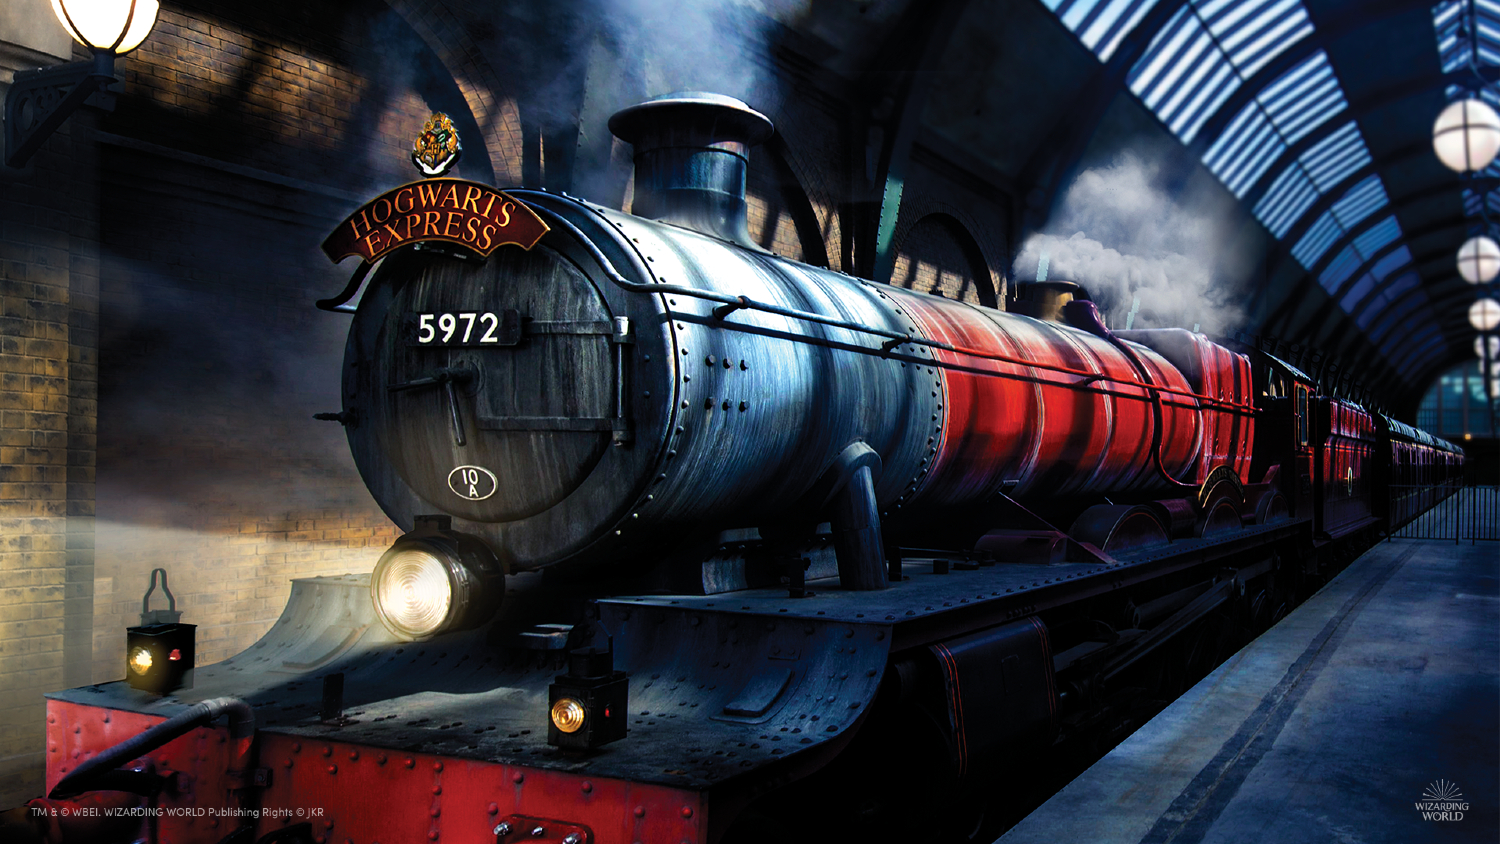 Plan your Hogwarts Express trolley order with this beautiful background of the iconic train.